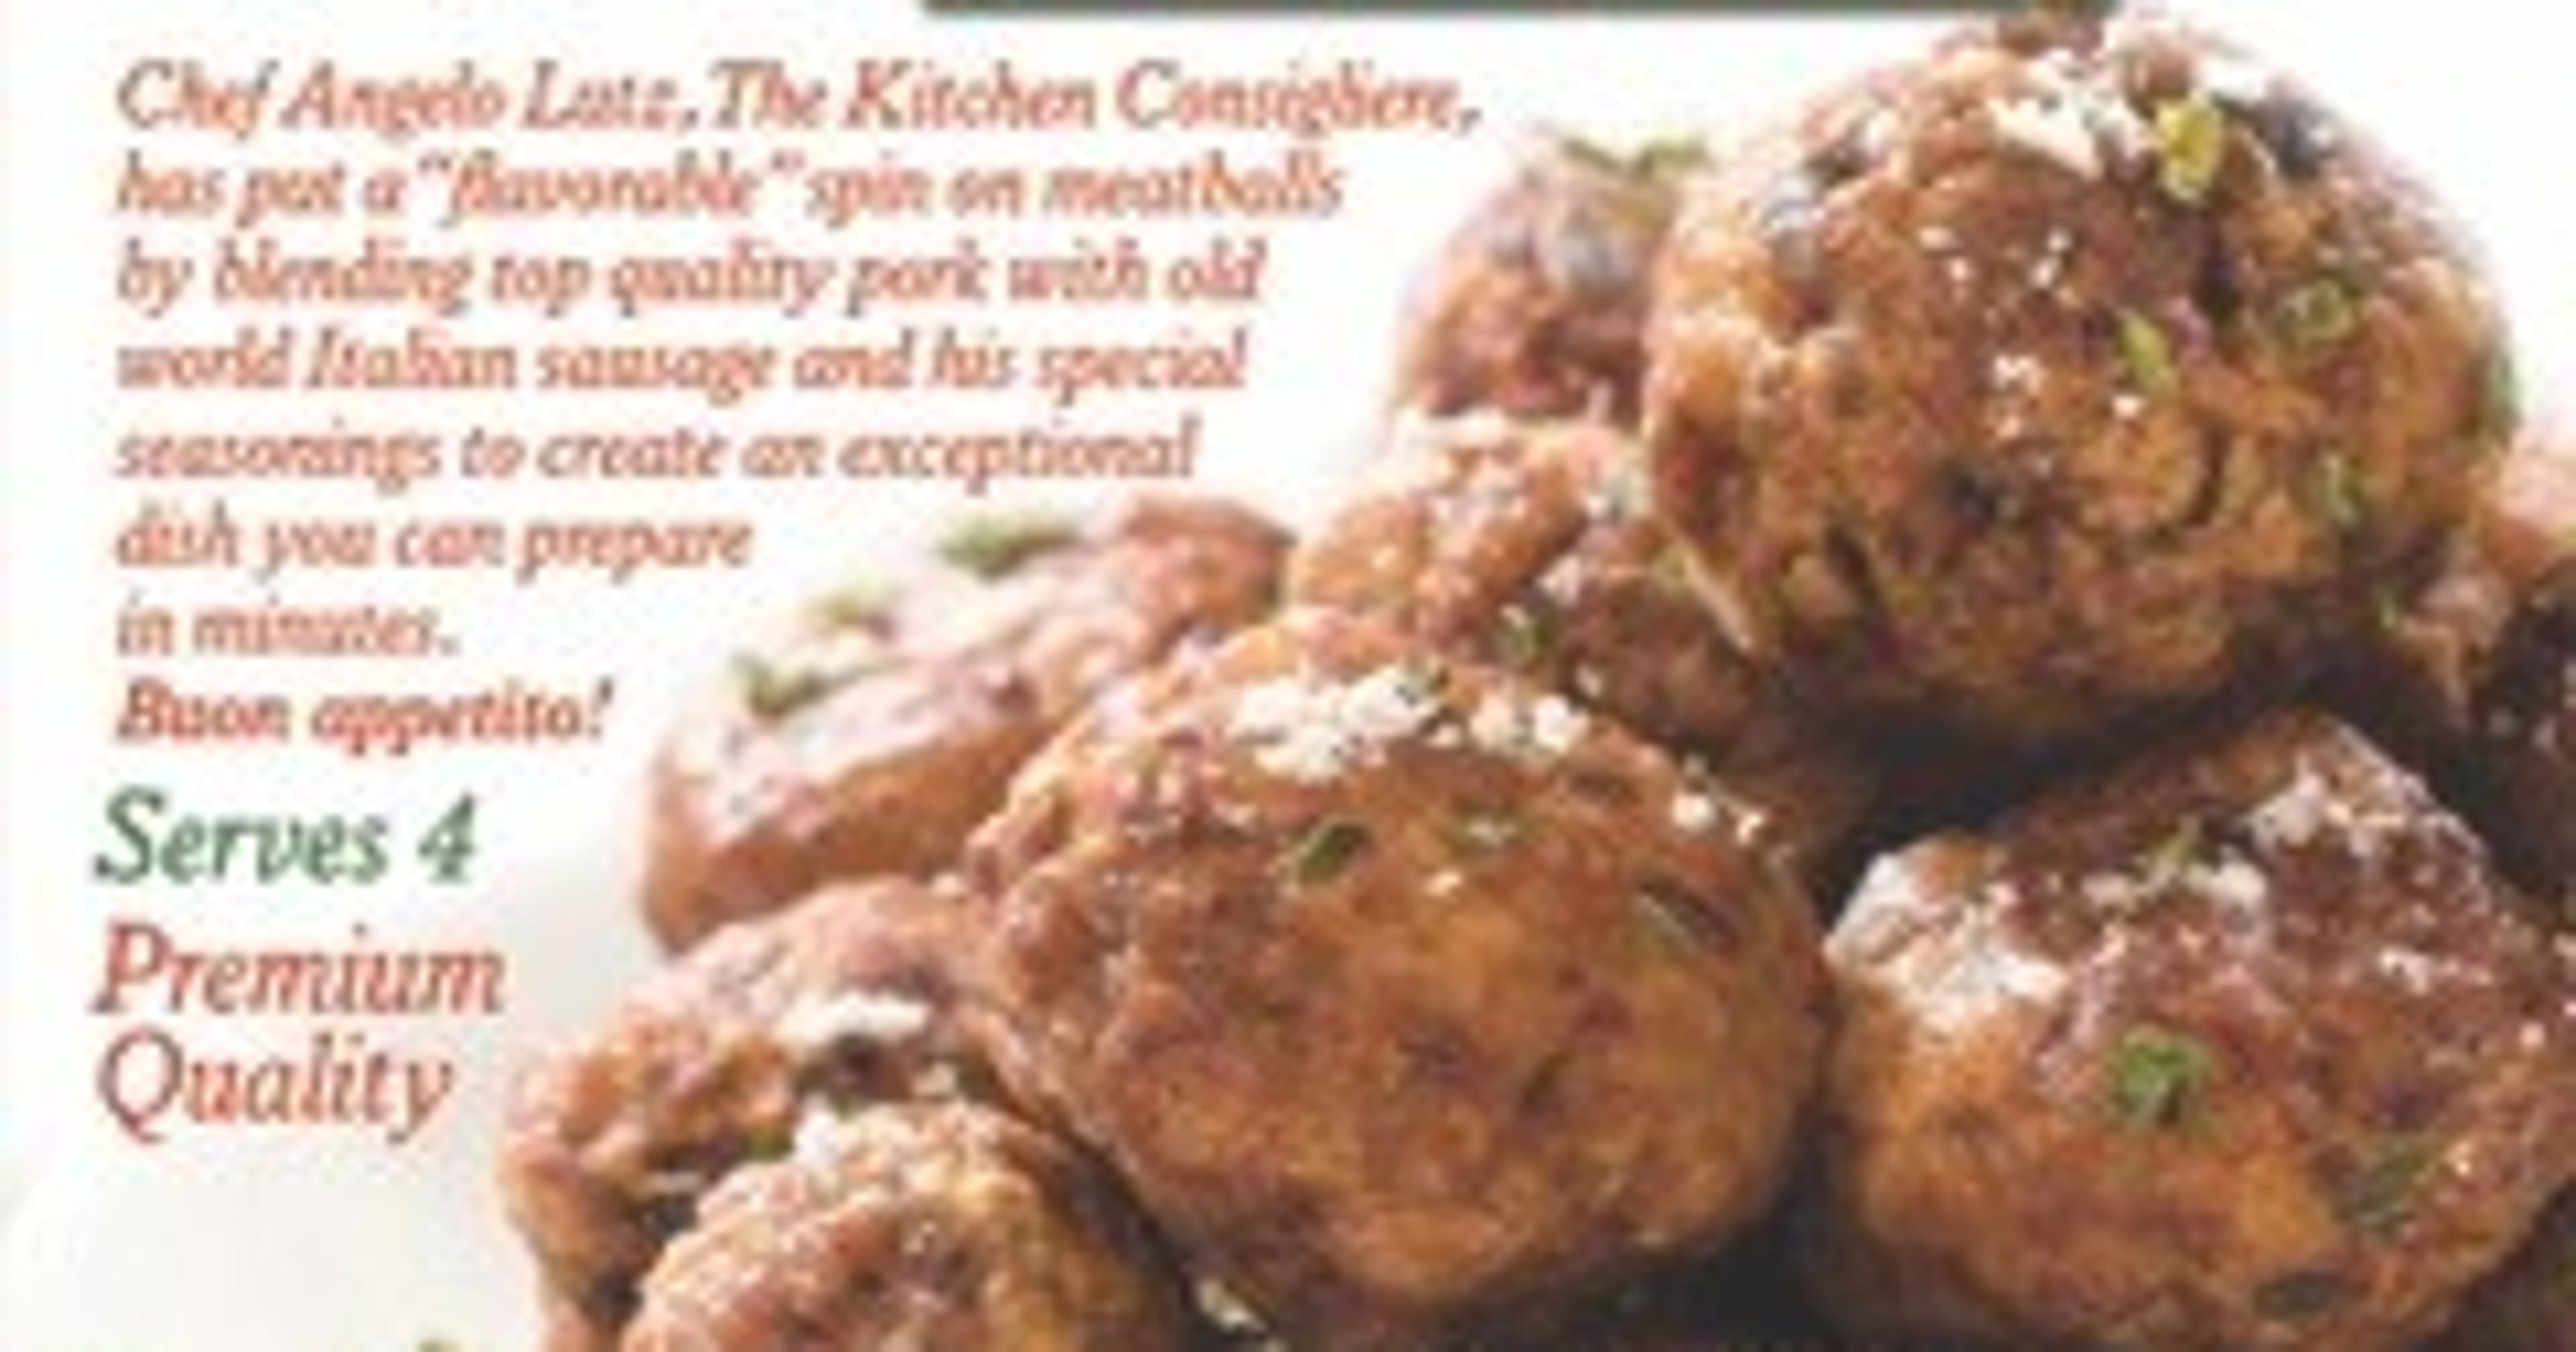 Kitchen Consigliere meatballs hit the big time